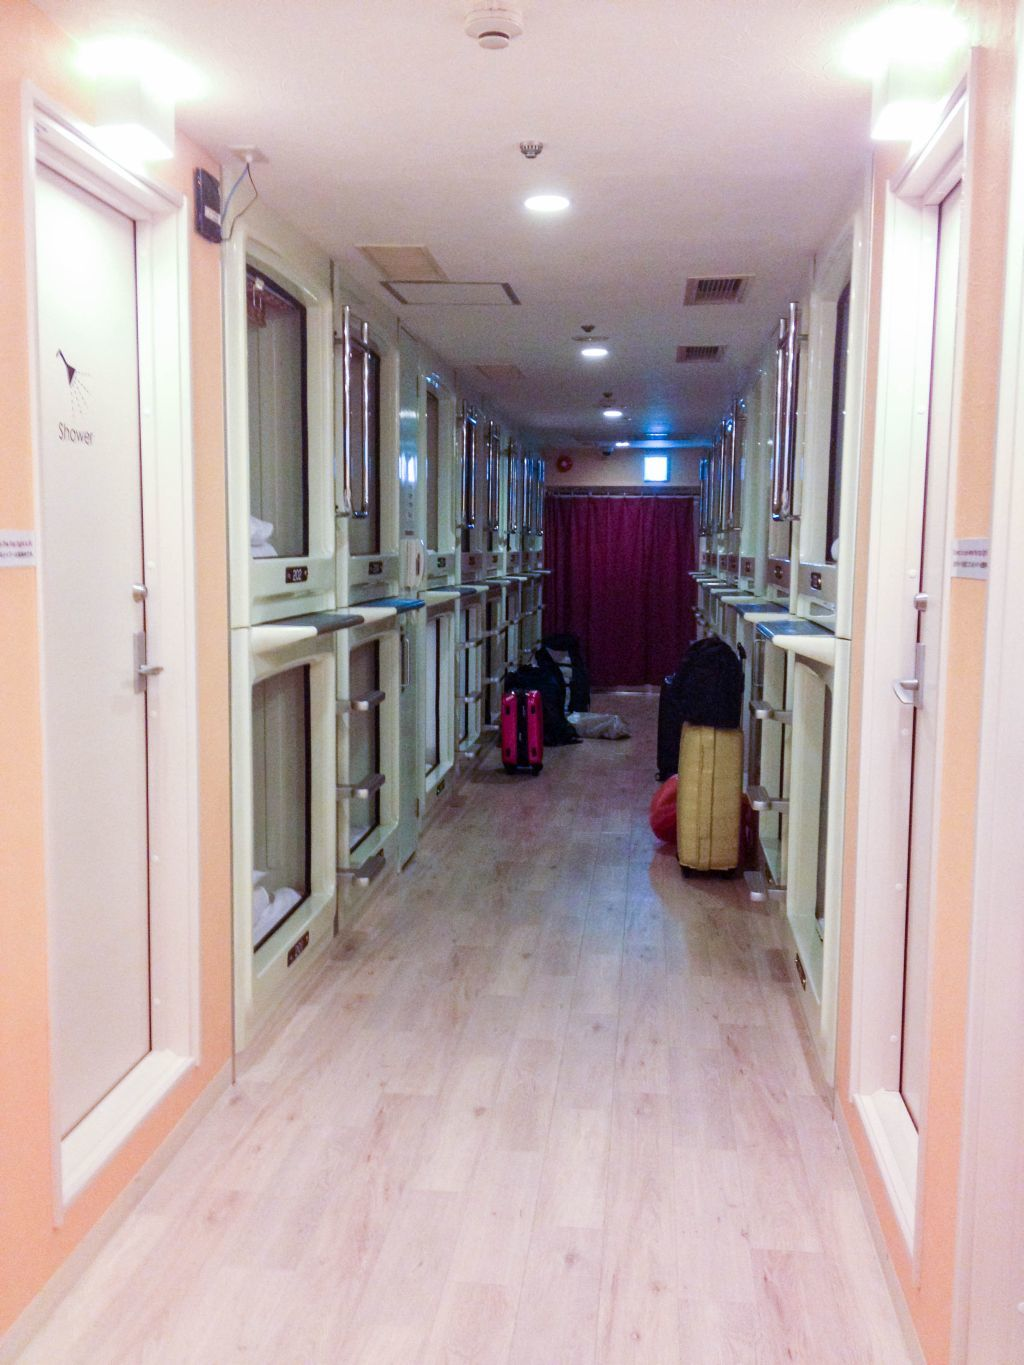 Double decker sleeping pods line the hallway for this capsule hotel